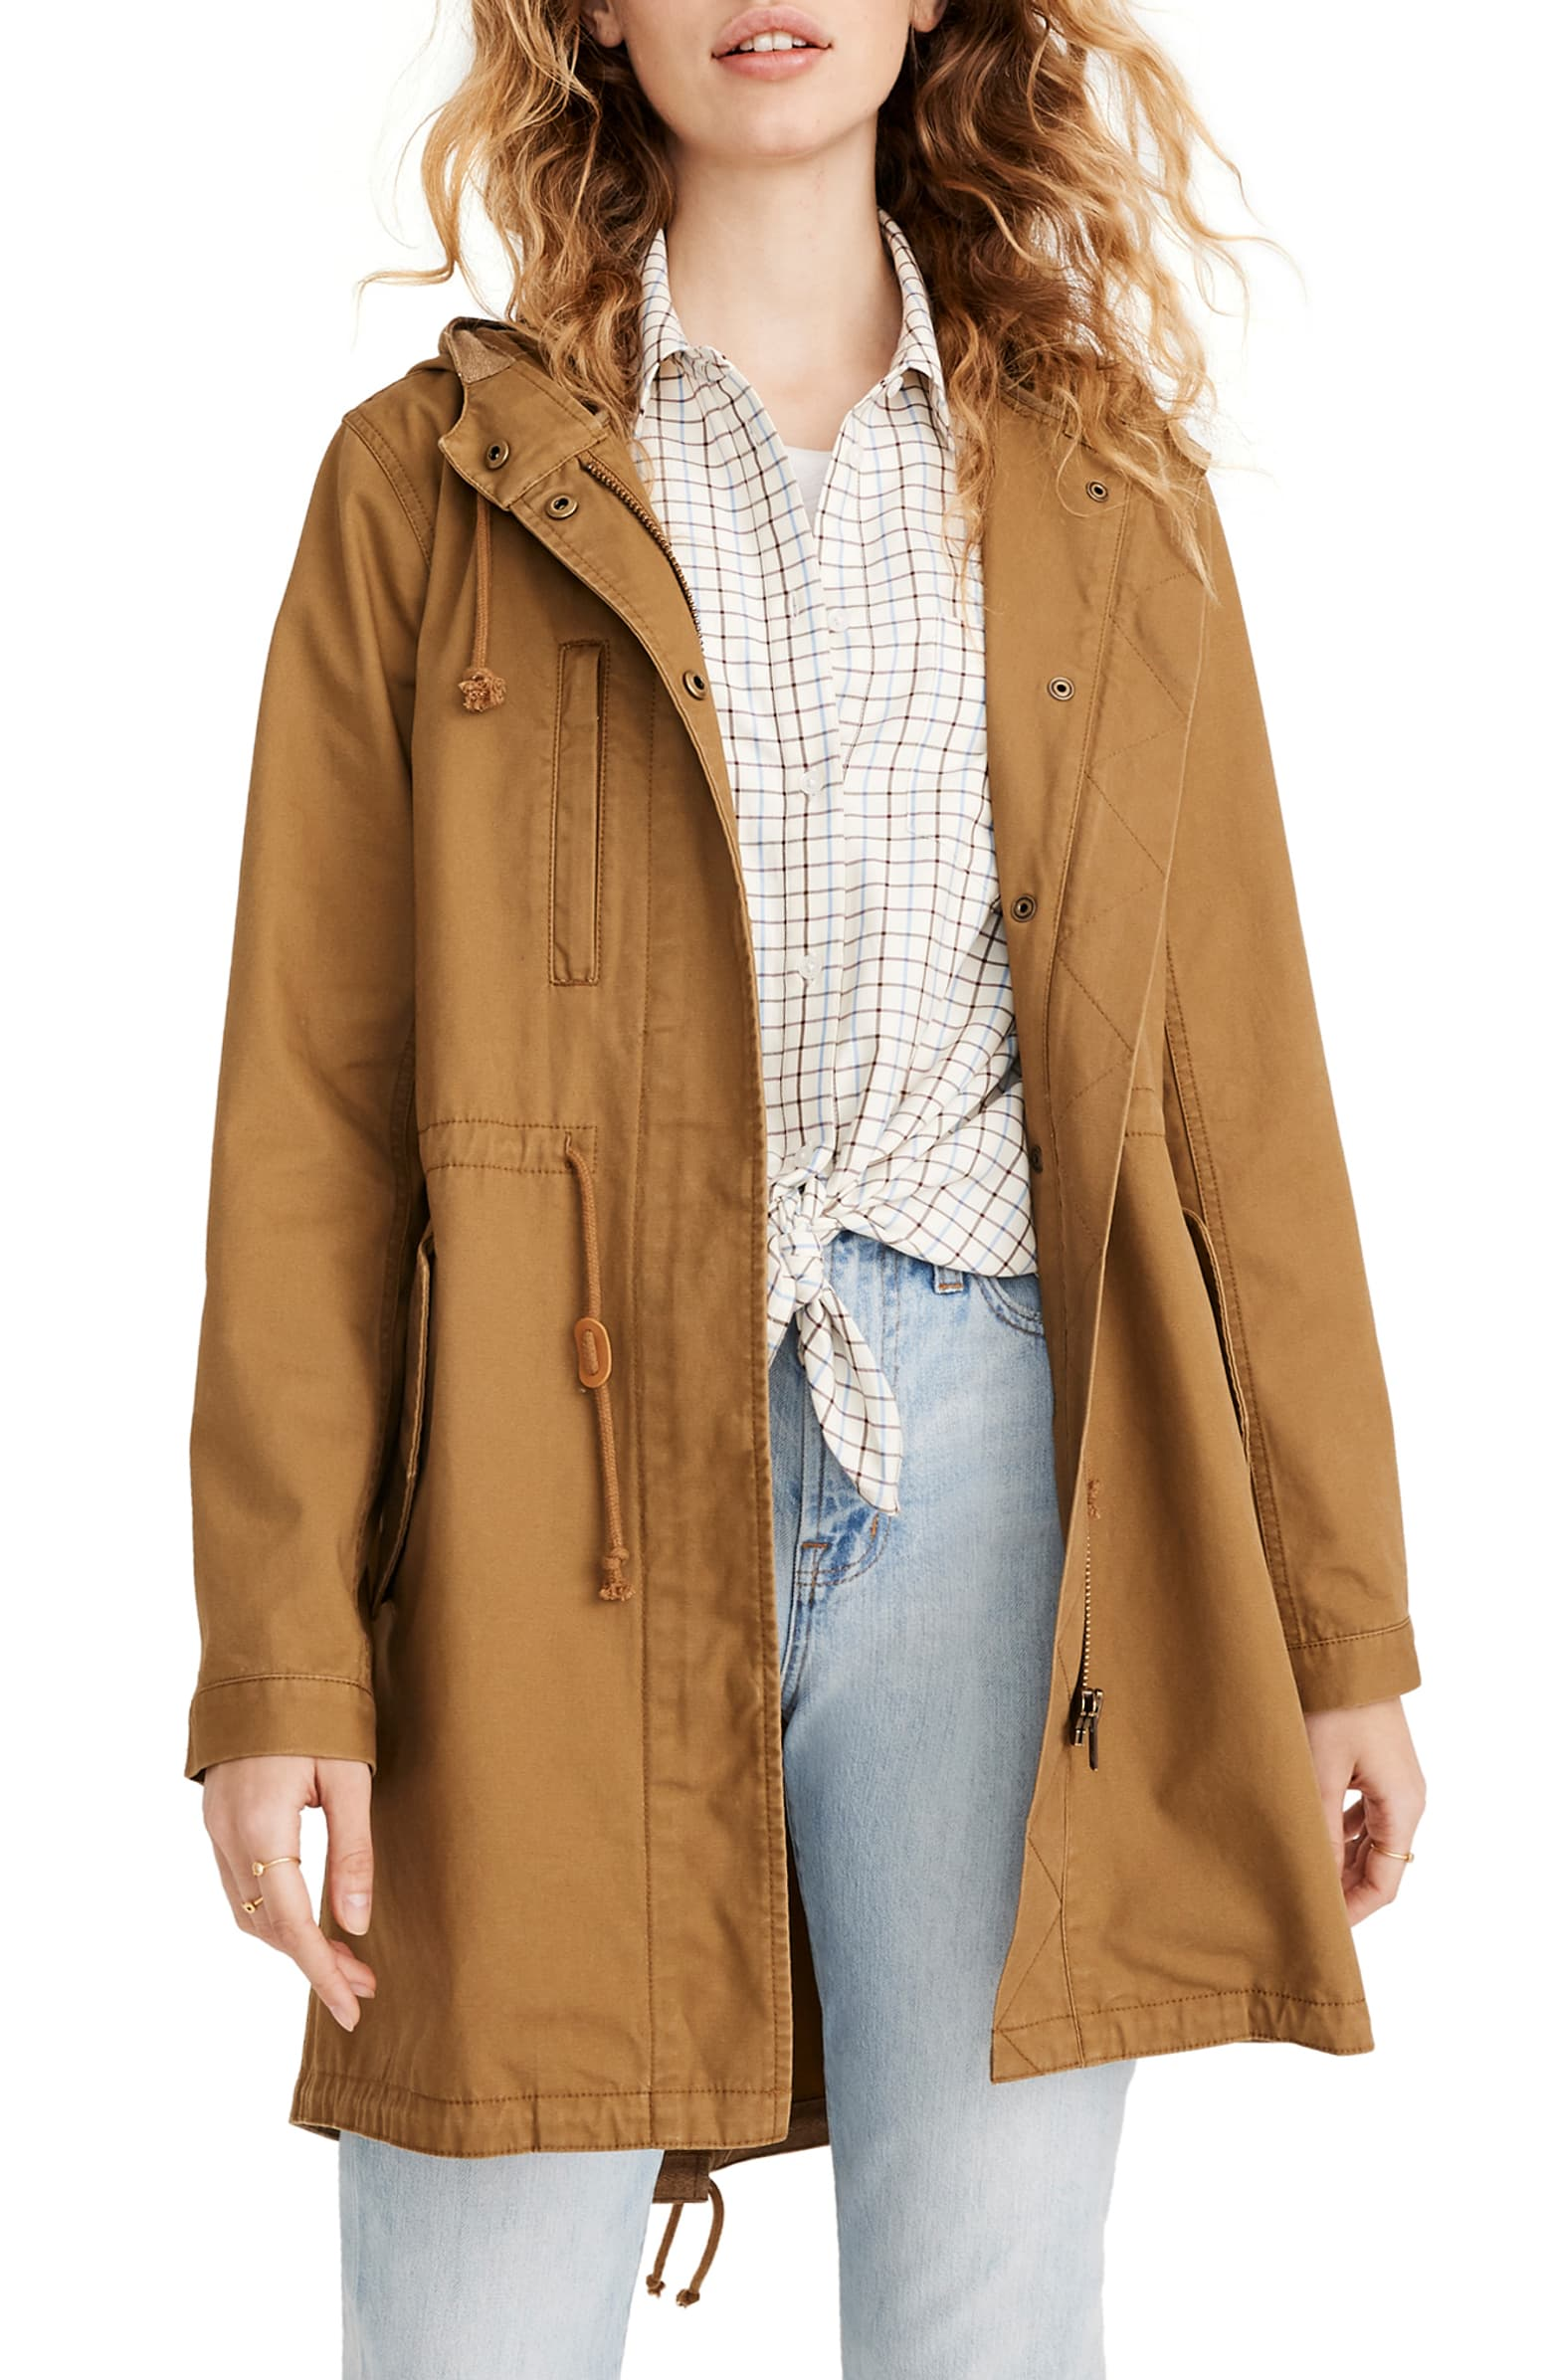 madewell jacket.jpeg